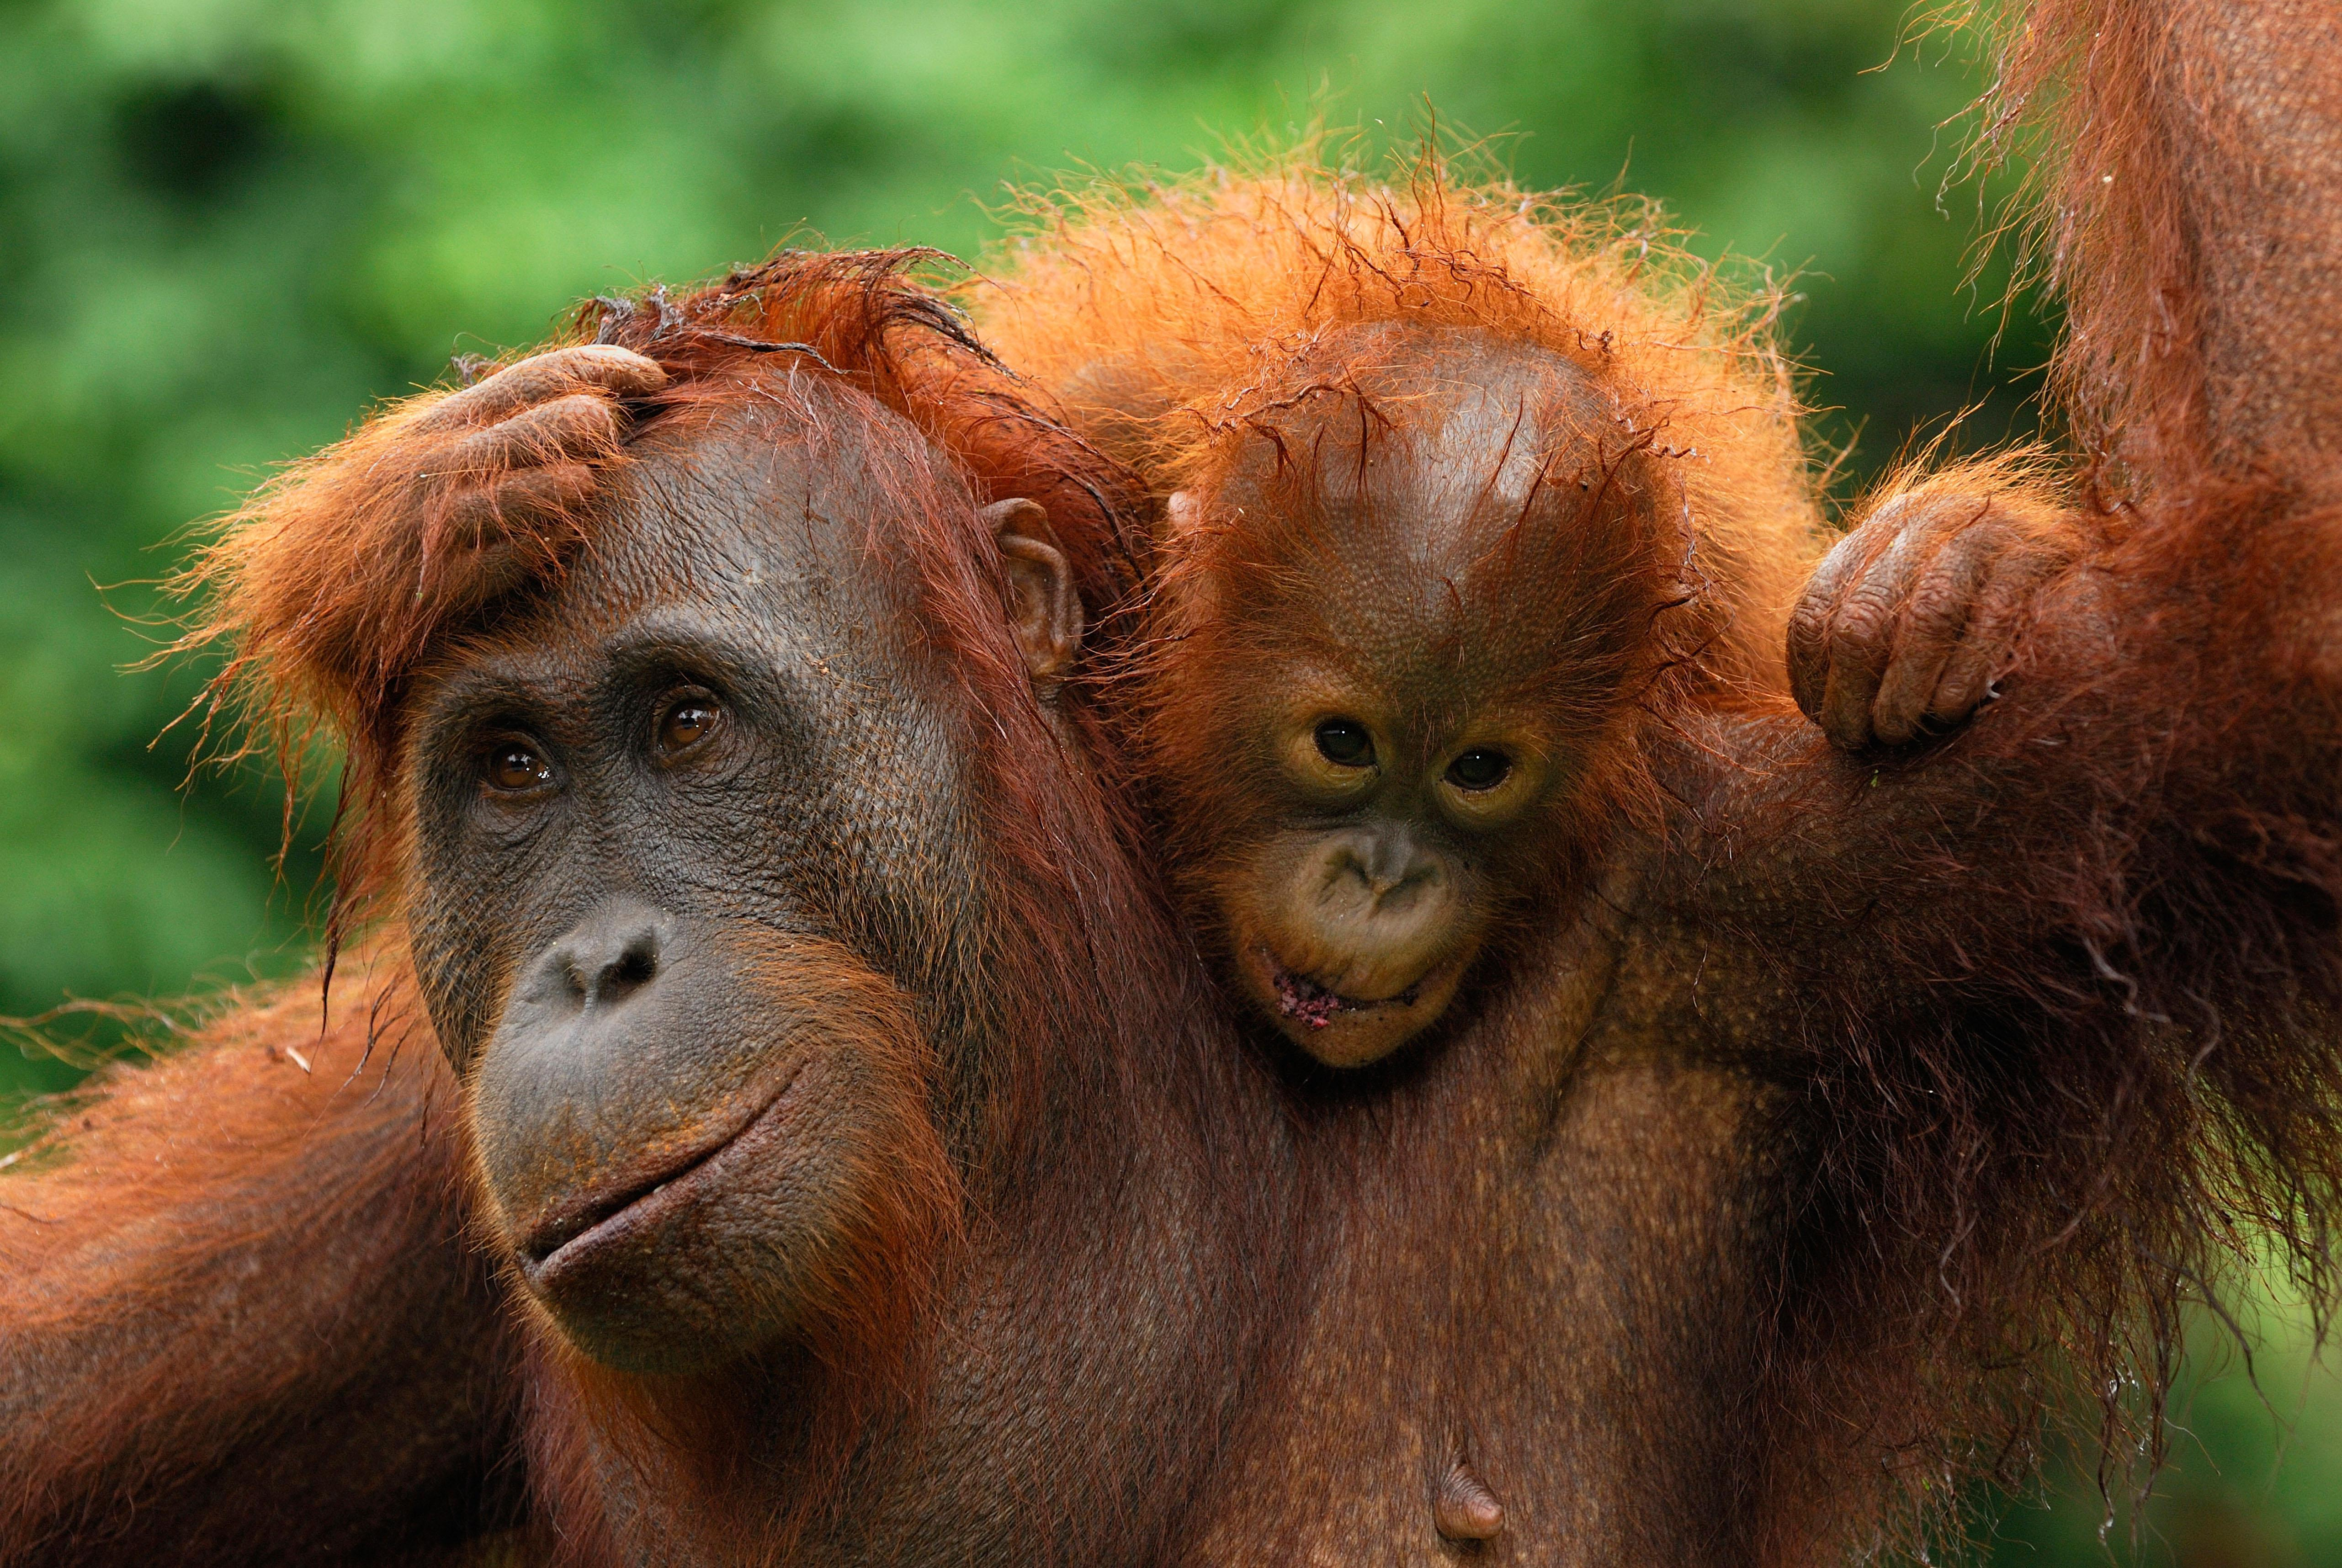 150,000 Borneo orangutans CULLED by shameful hunters and palm oil farmers in just 16 years on paradise island